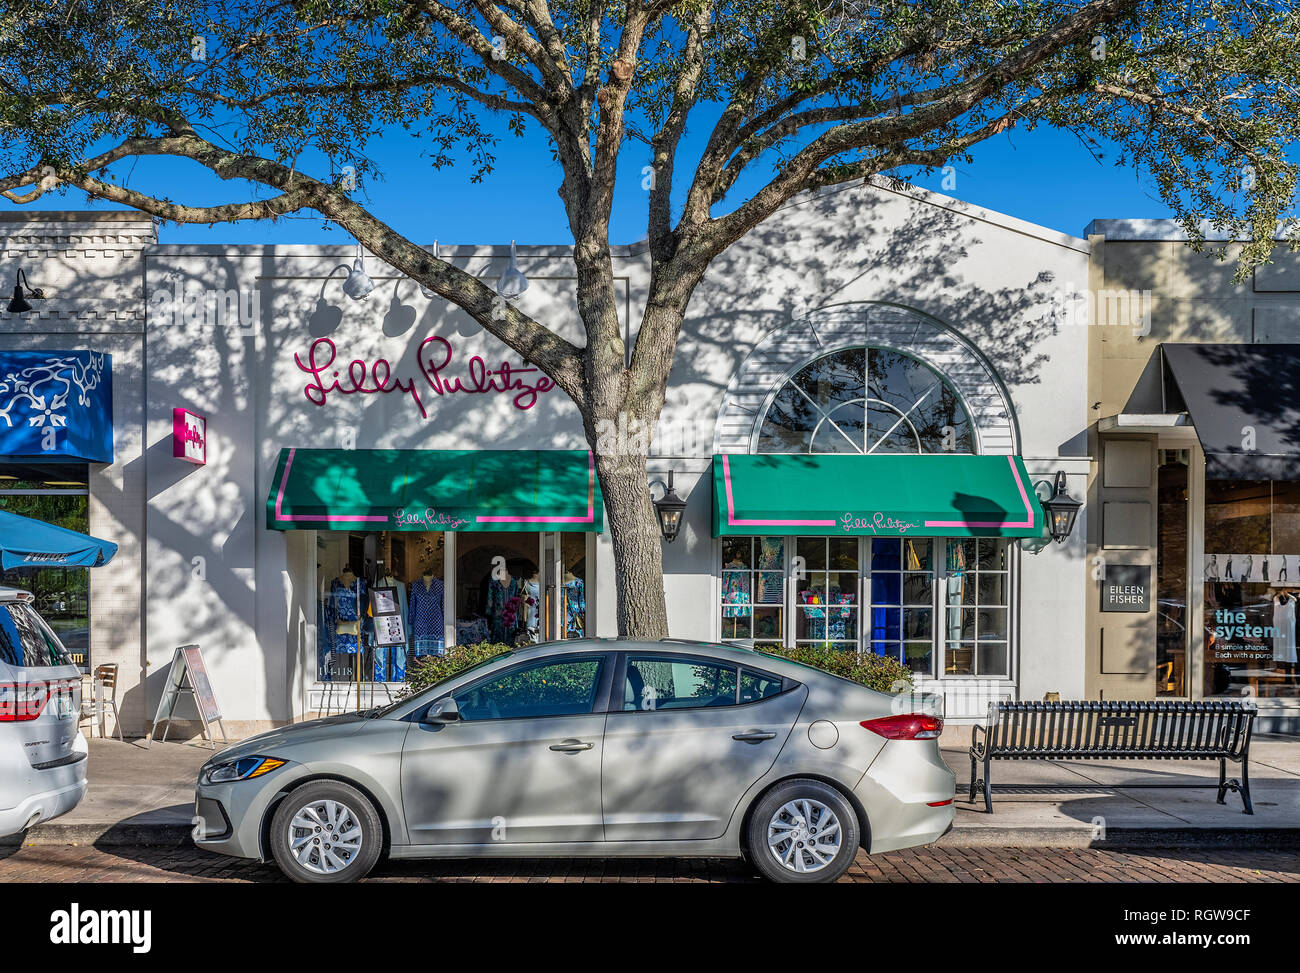 Lilly Pulitzer Signatur speichern, Winter Park, Florida, USA. Stockbild